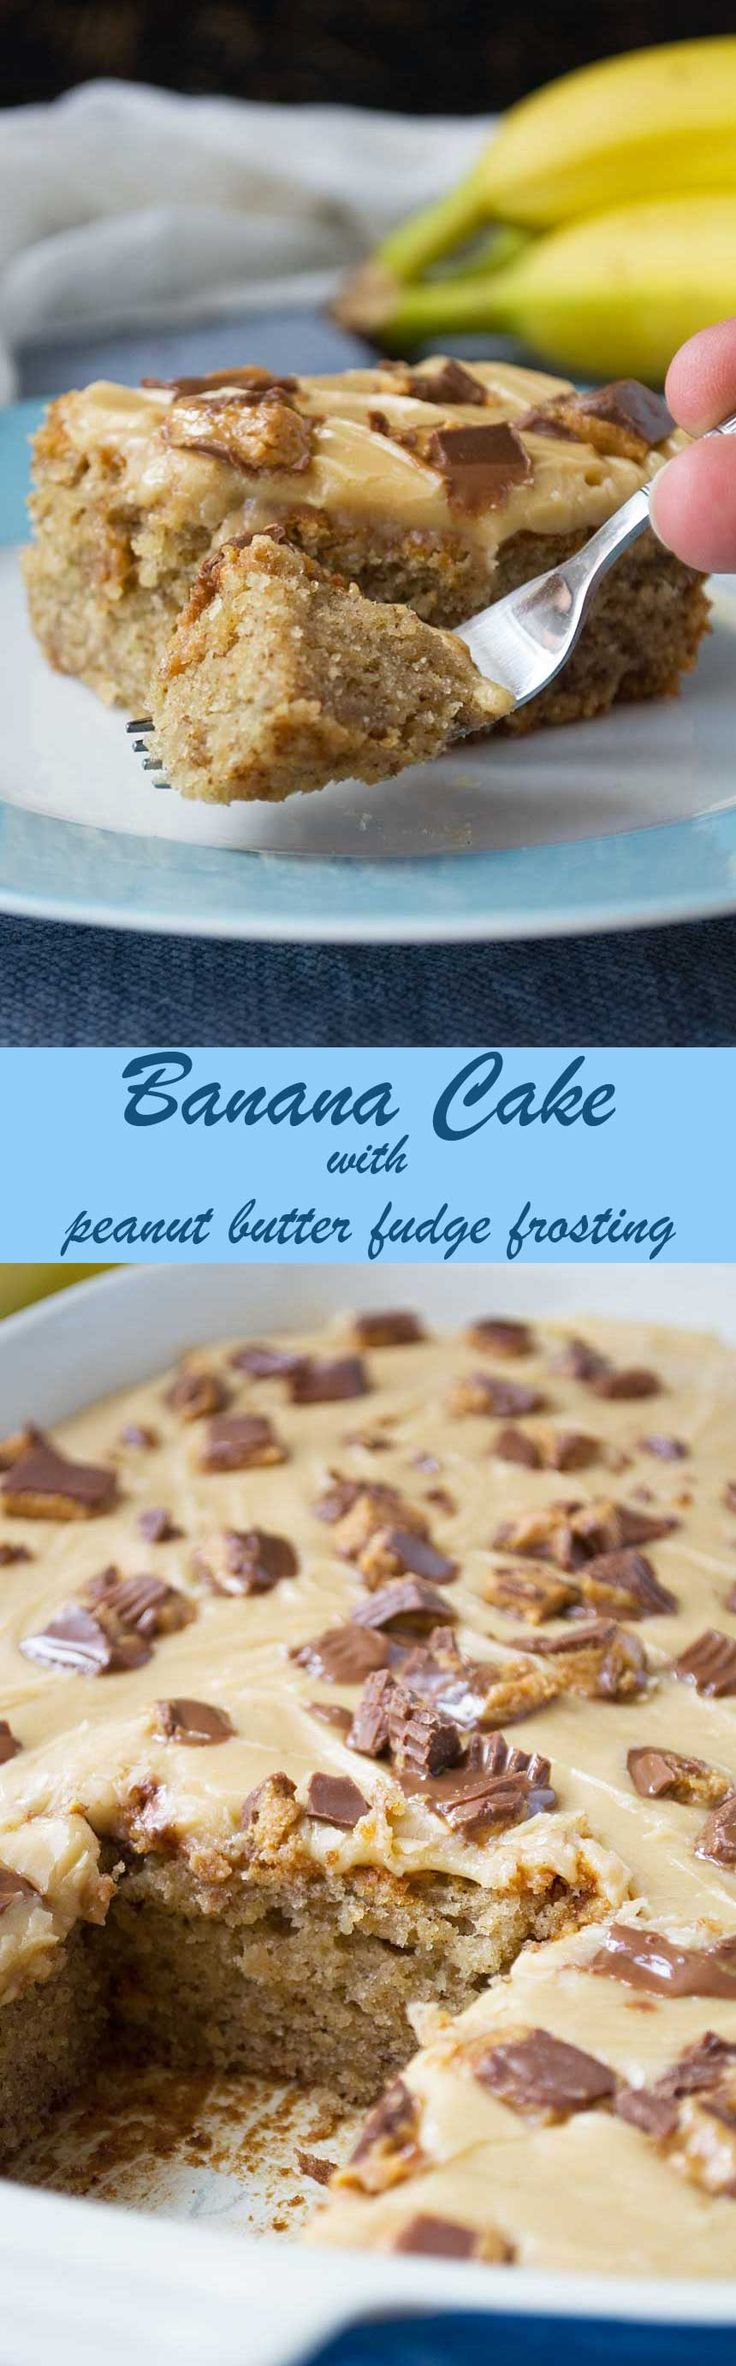 Banana sheet cake with peanut butter fudge frosting                                                                                                                                                                                 More